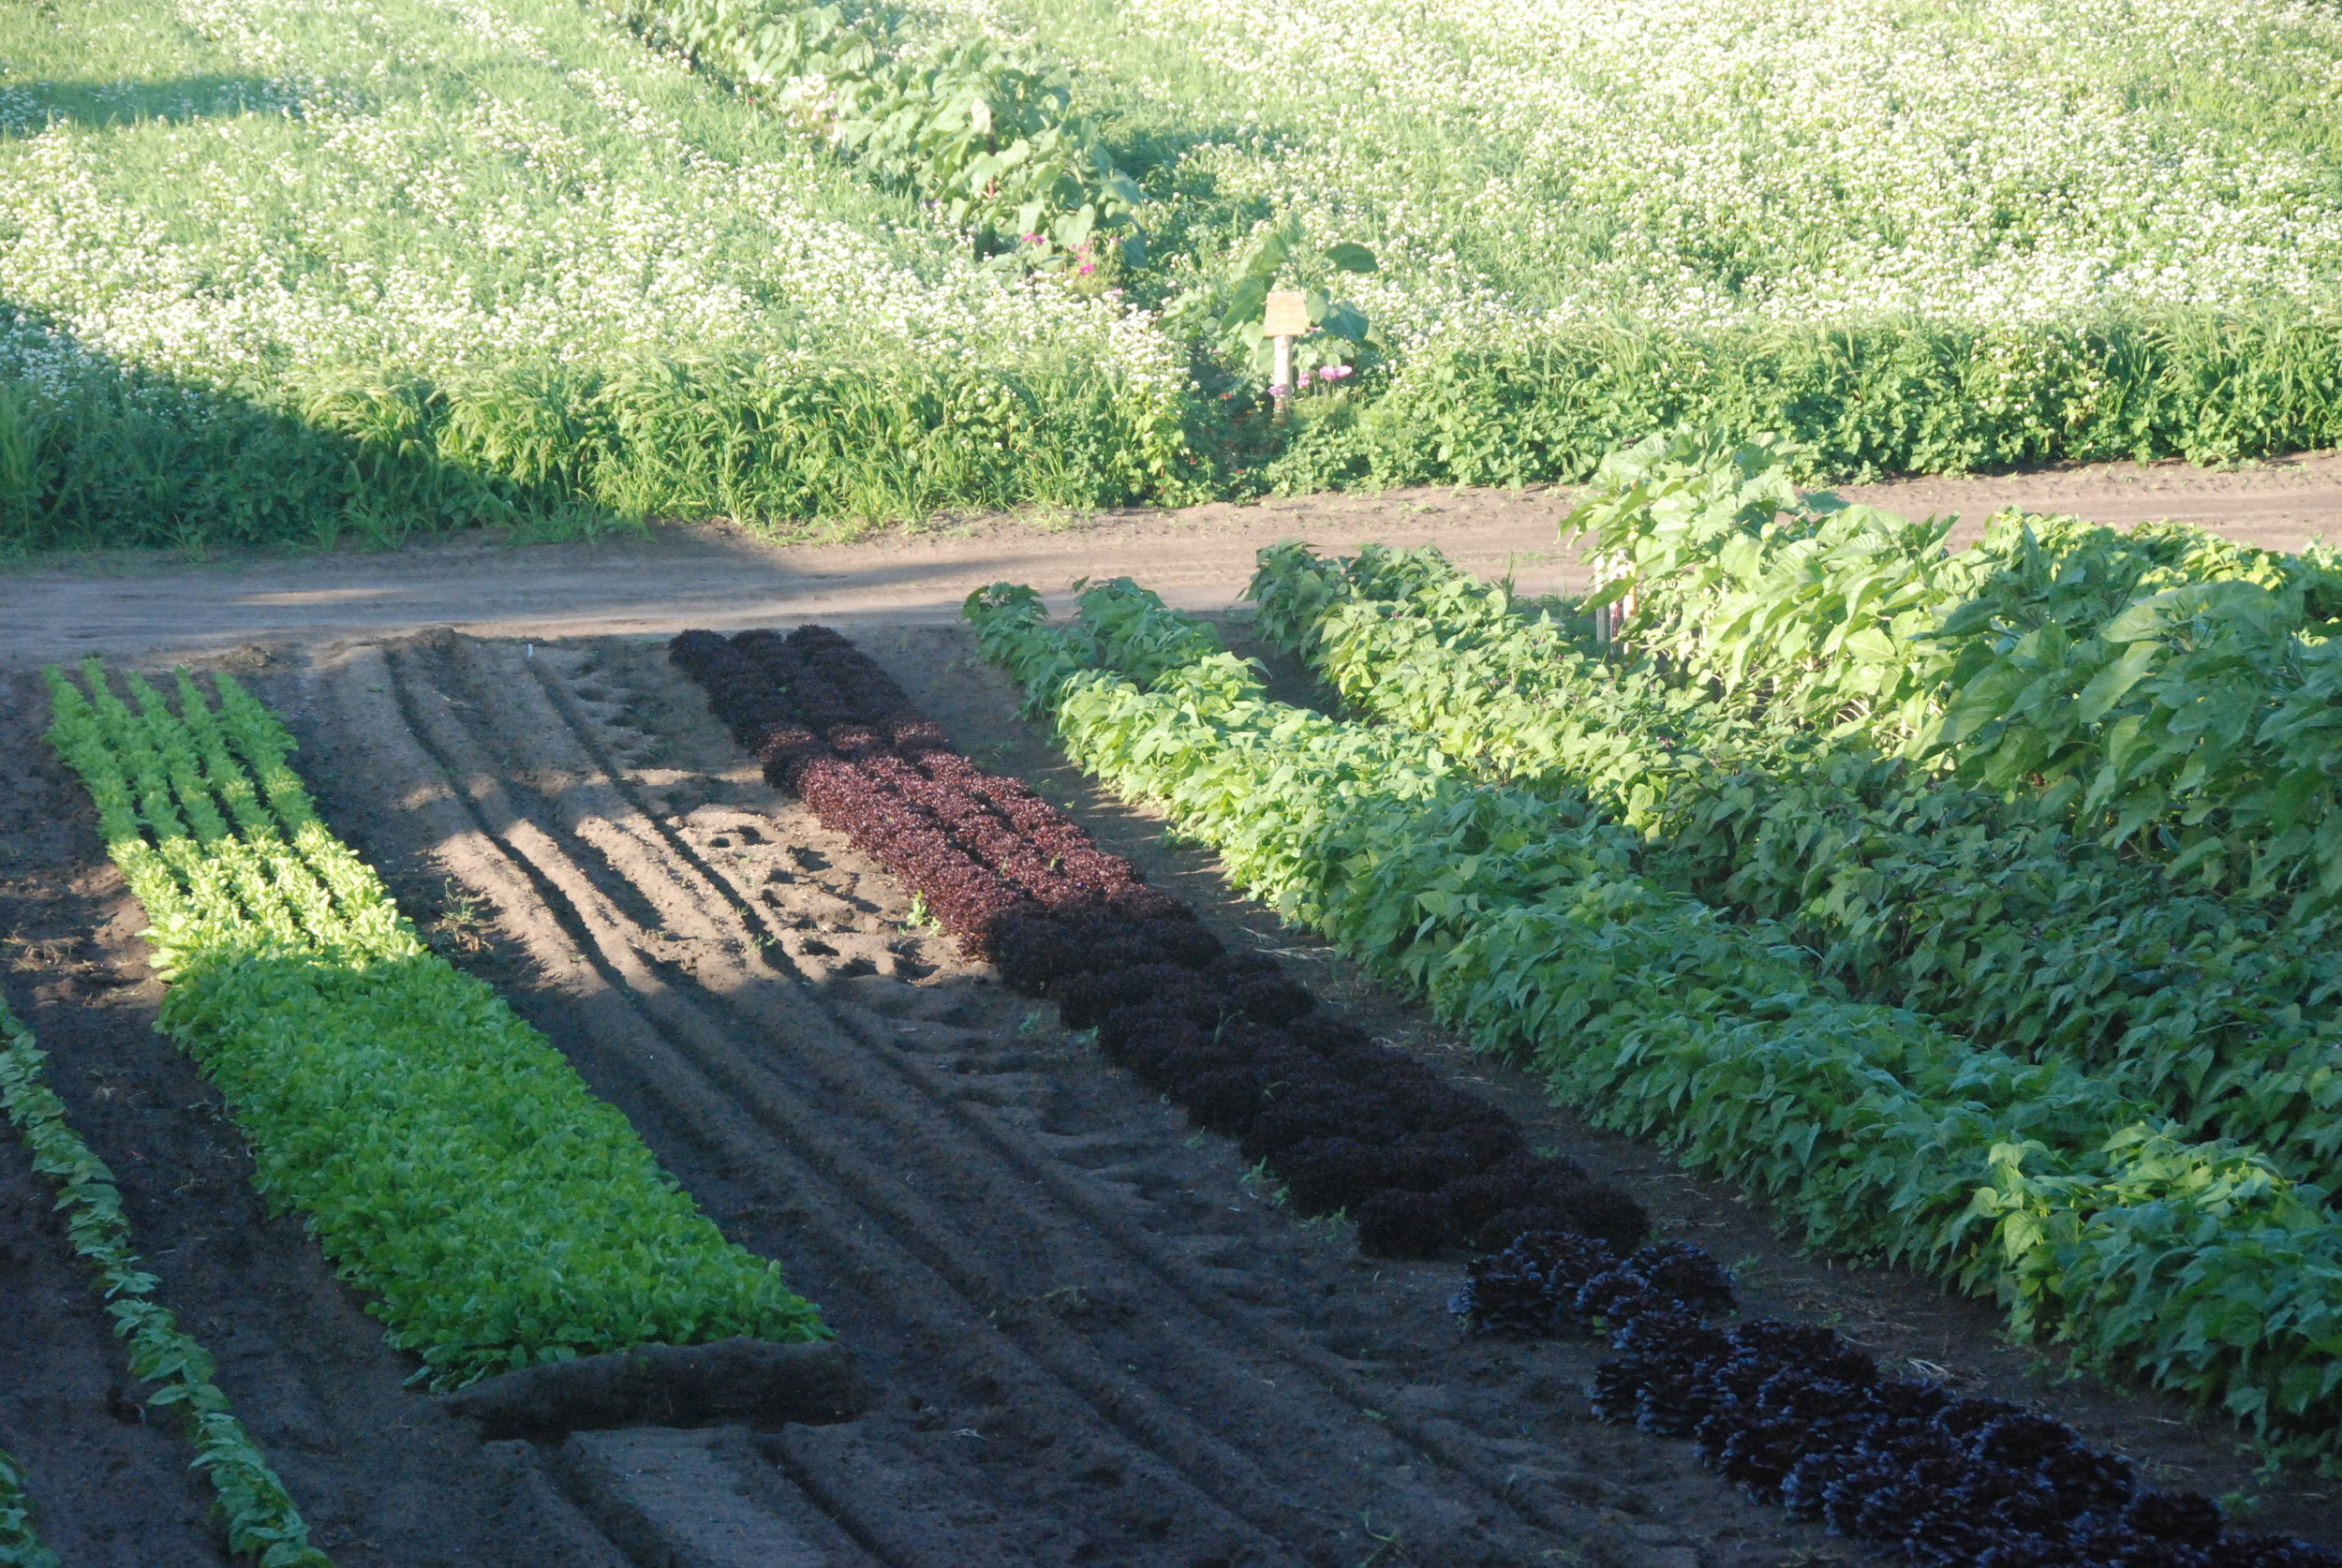 Summer Beans and Lettuce - with green manure crops preparing soil for Autumn Pea plantings